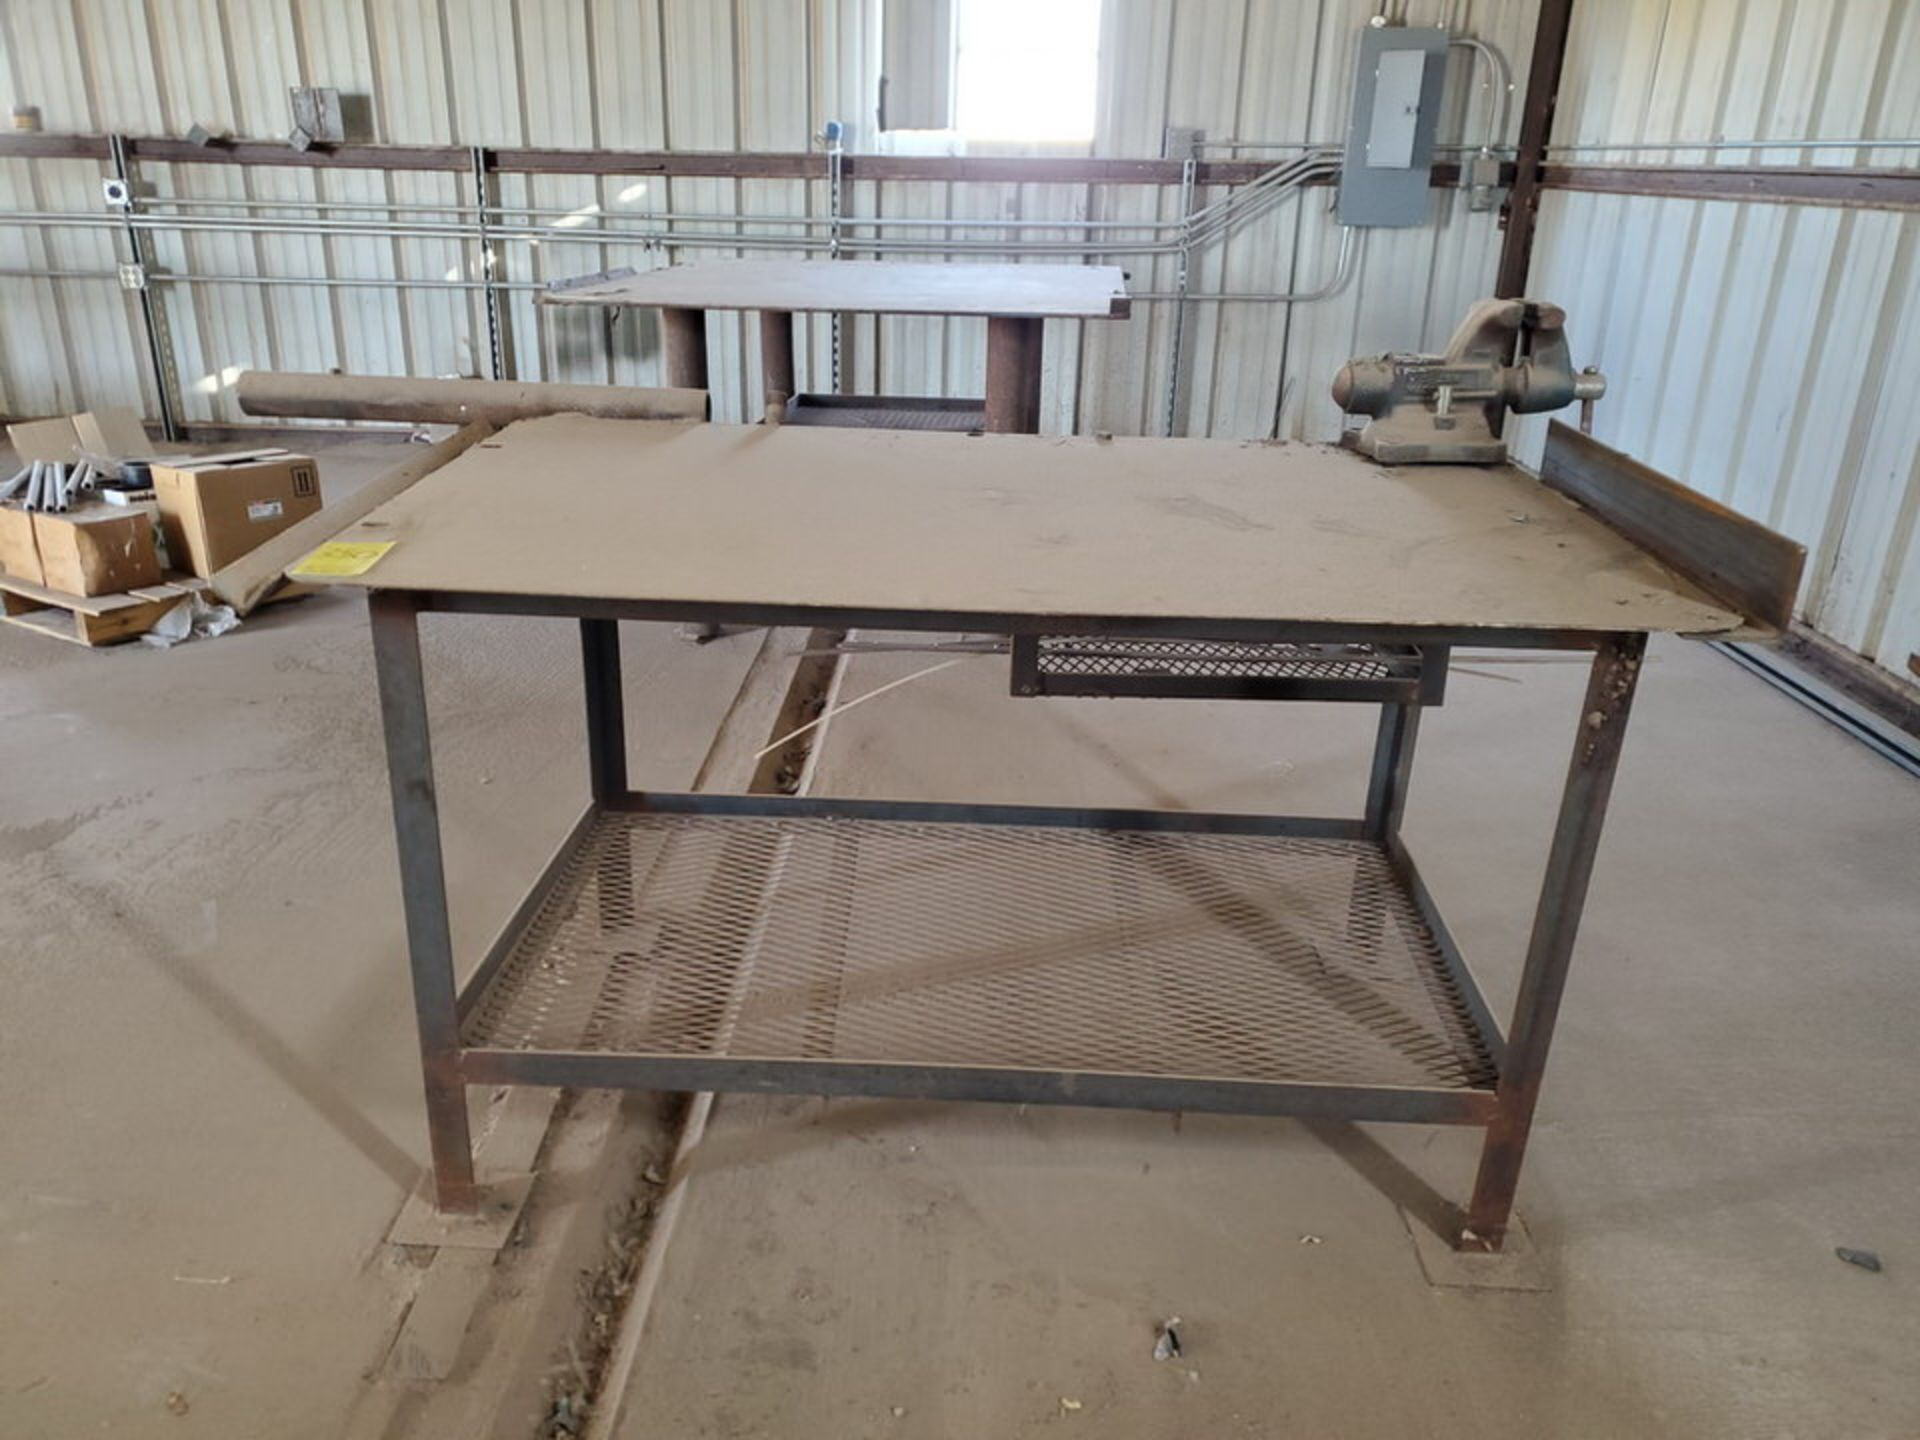 """Welding Tables (1) 37"""" x 65"""" x 36"""", W/ 5-1/2"""" Vise, (1) 72"""" x 64"""" x 38"""" - Image 6 of 8"""